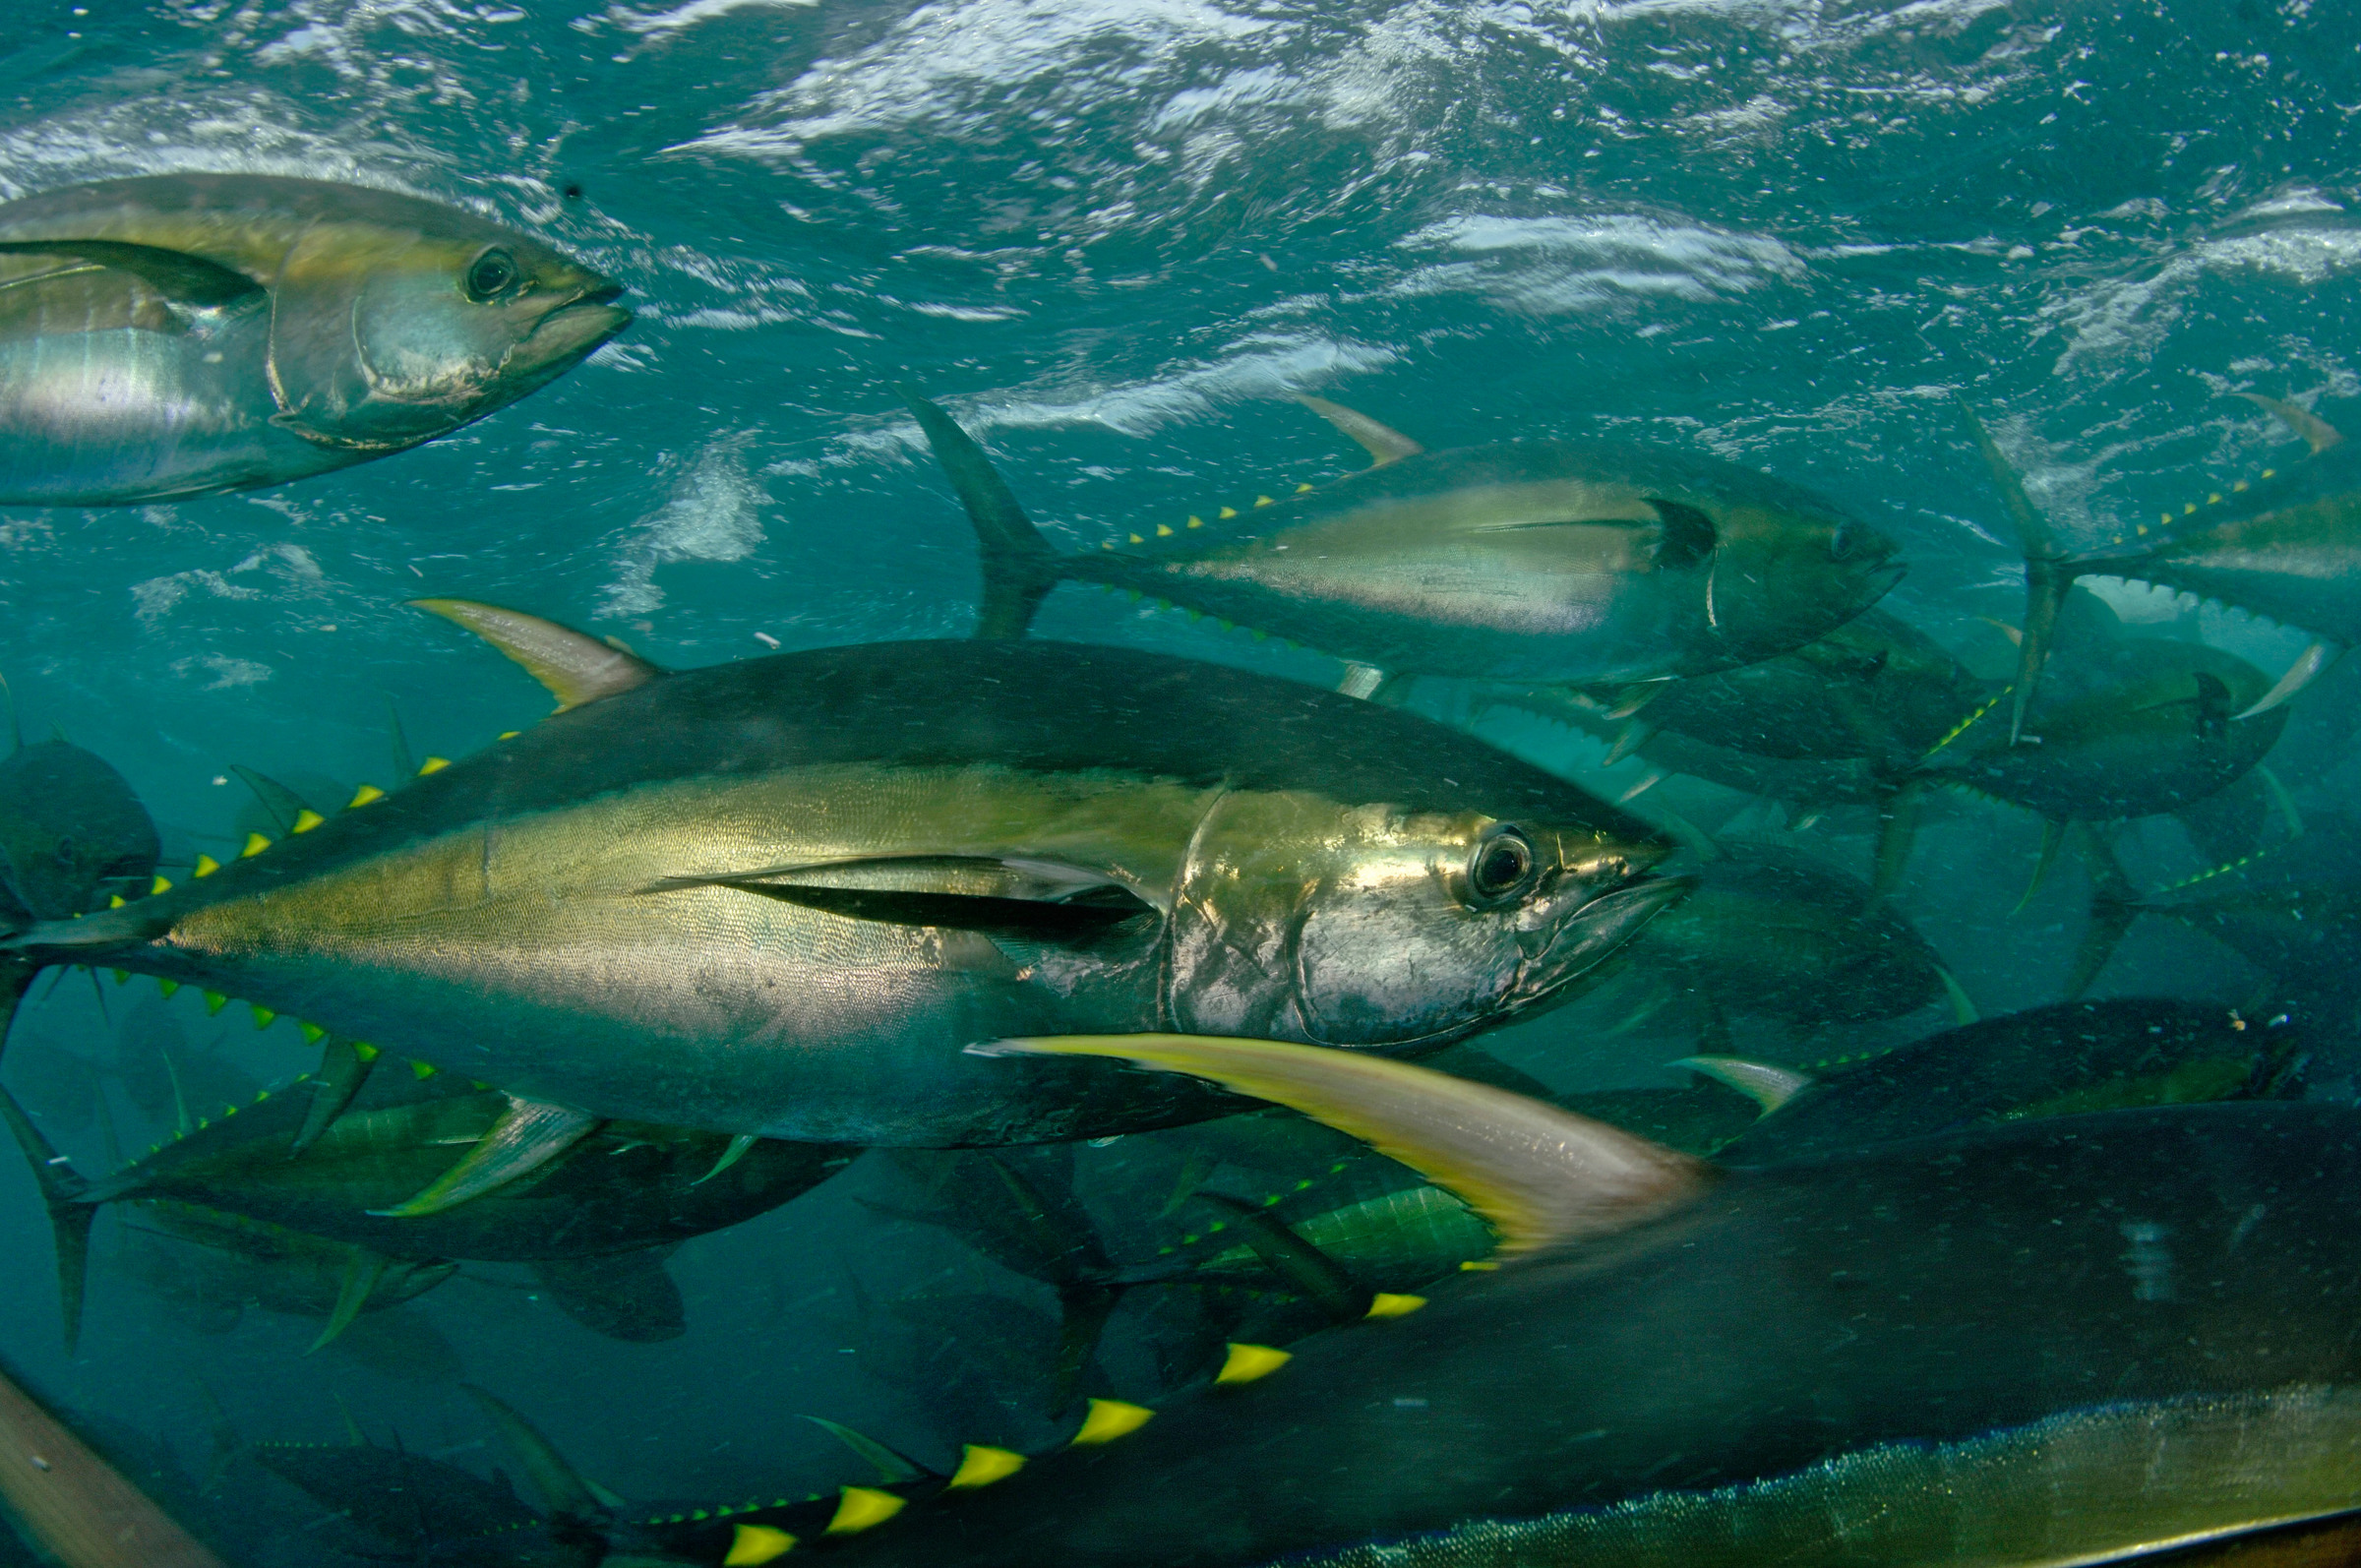 Yellowfin Tuna (Thunnus albacares) are cage-fed to improve the quality of their meat. La Paz, Mexico.